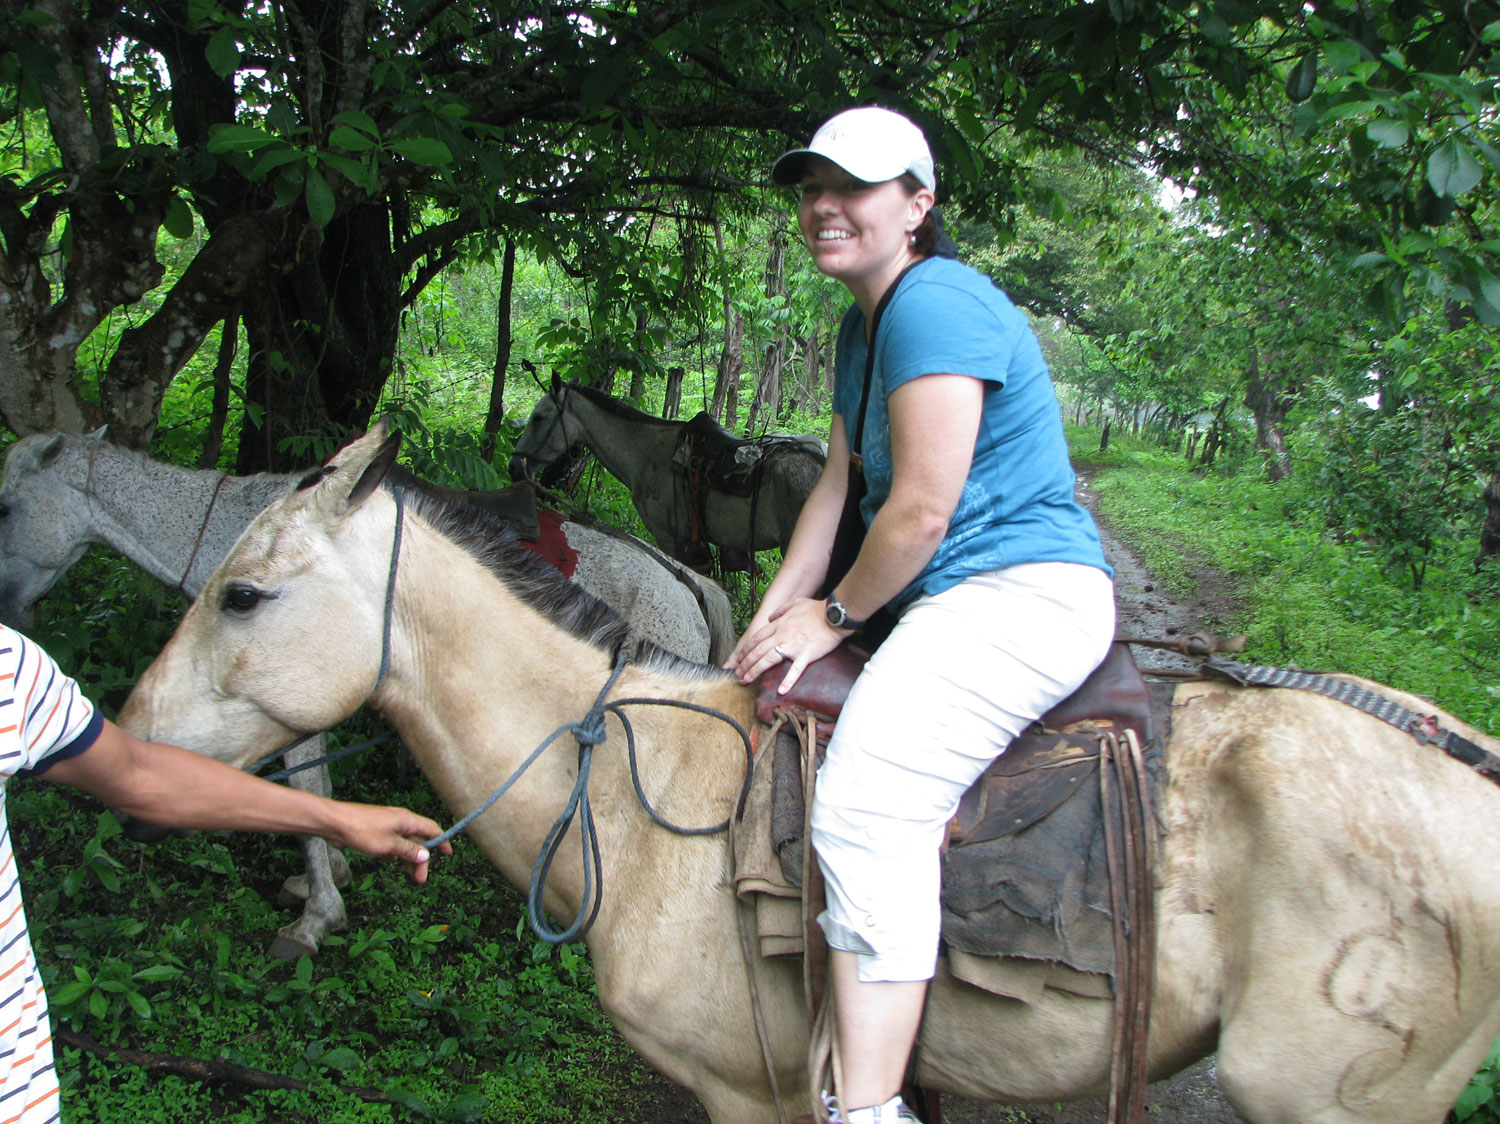 Kristine braved the horse ride up to the top (I did too!)